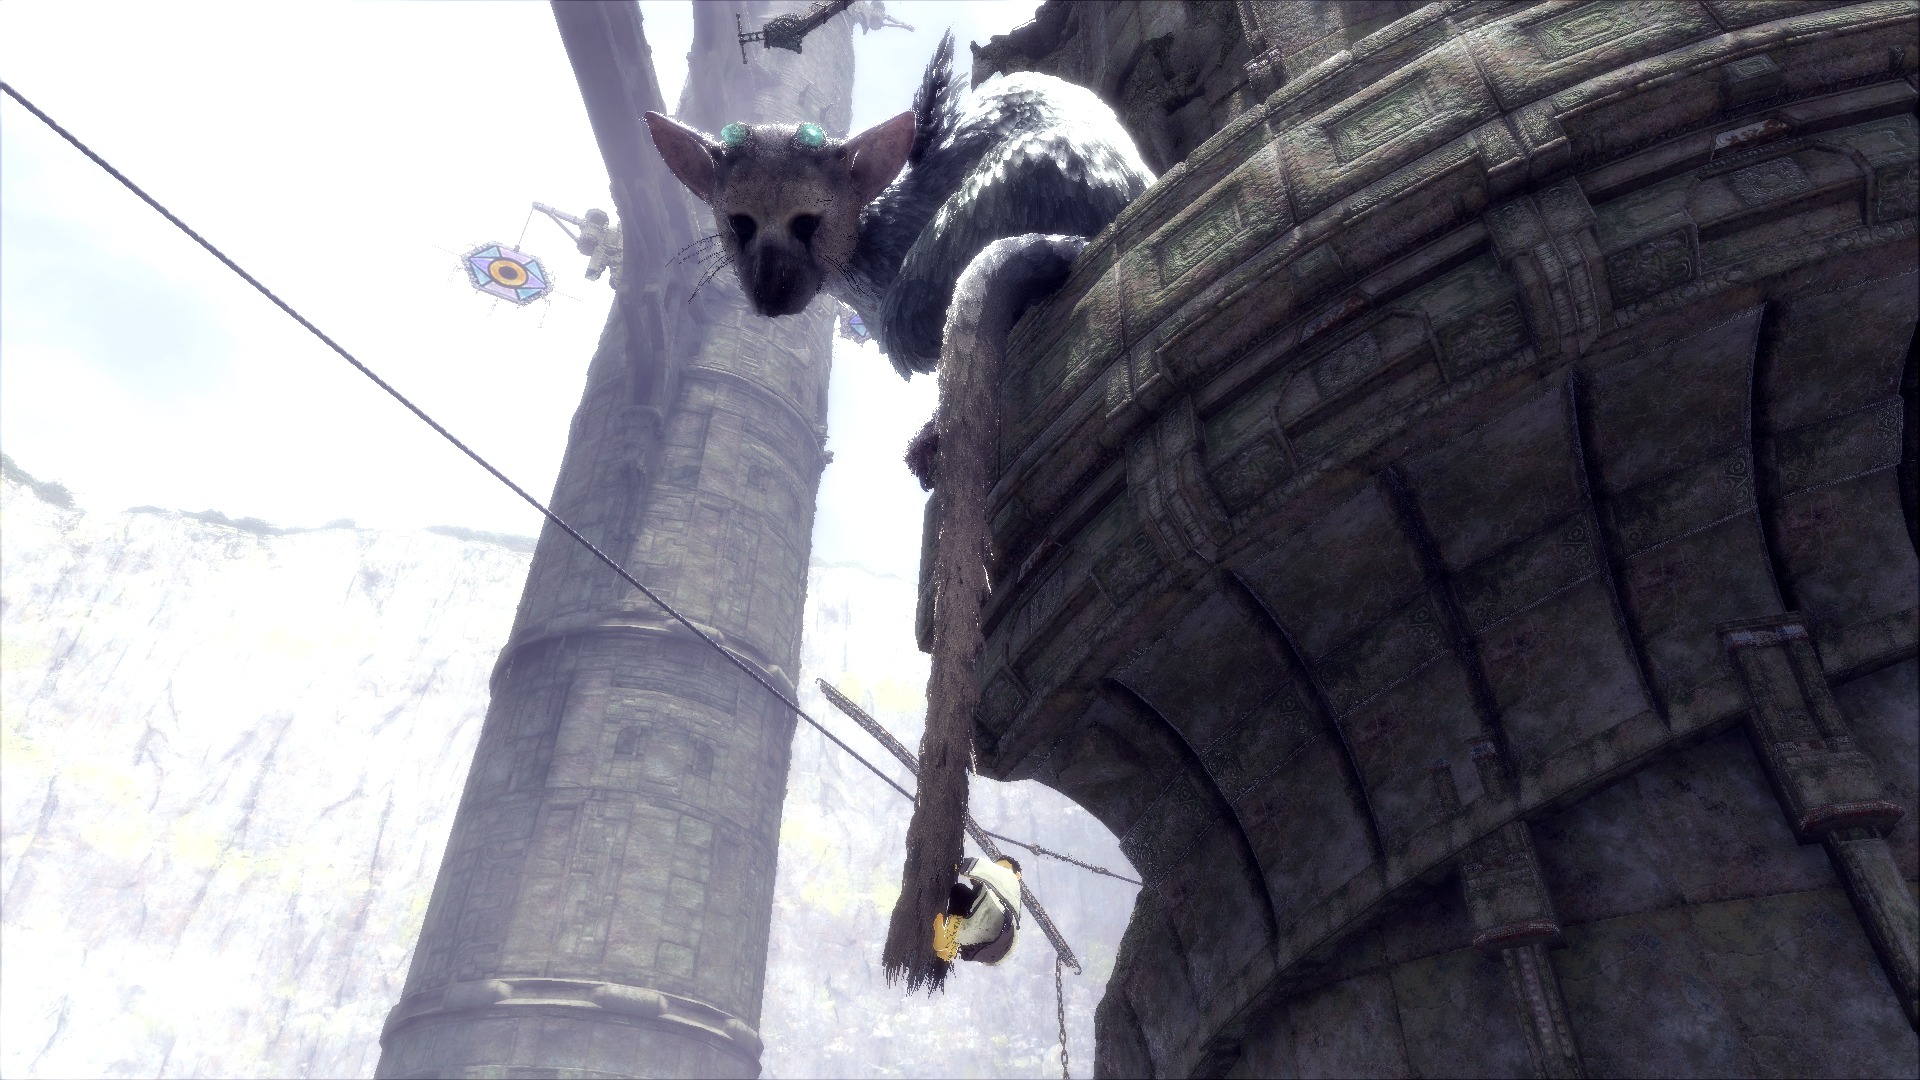 New The Last Guardian Trailer Showcases The Action